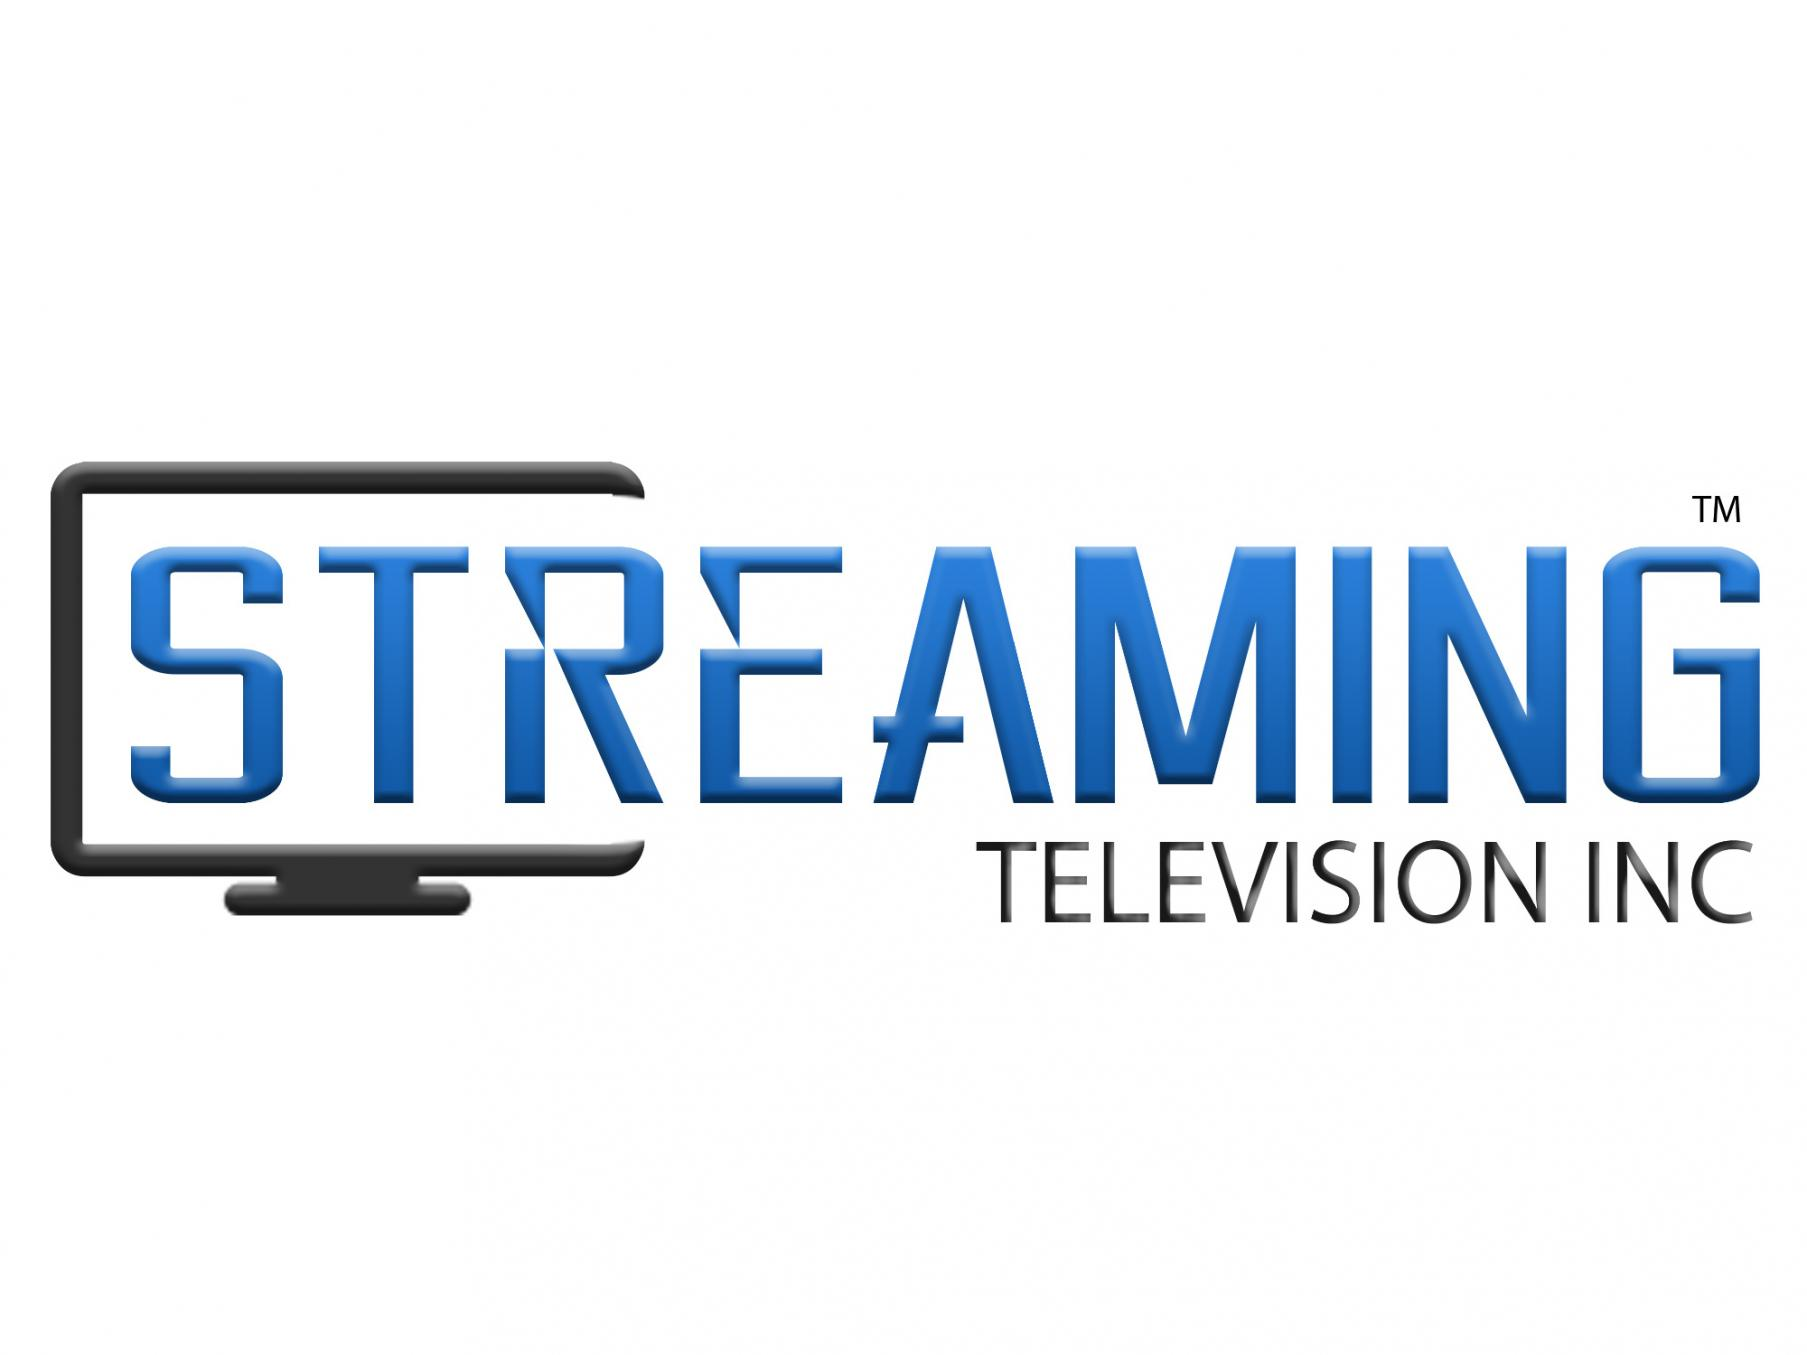 Streaming Television Inc